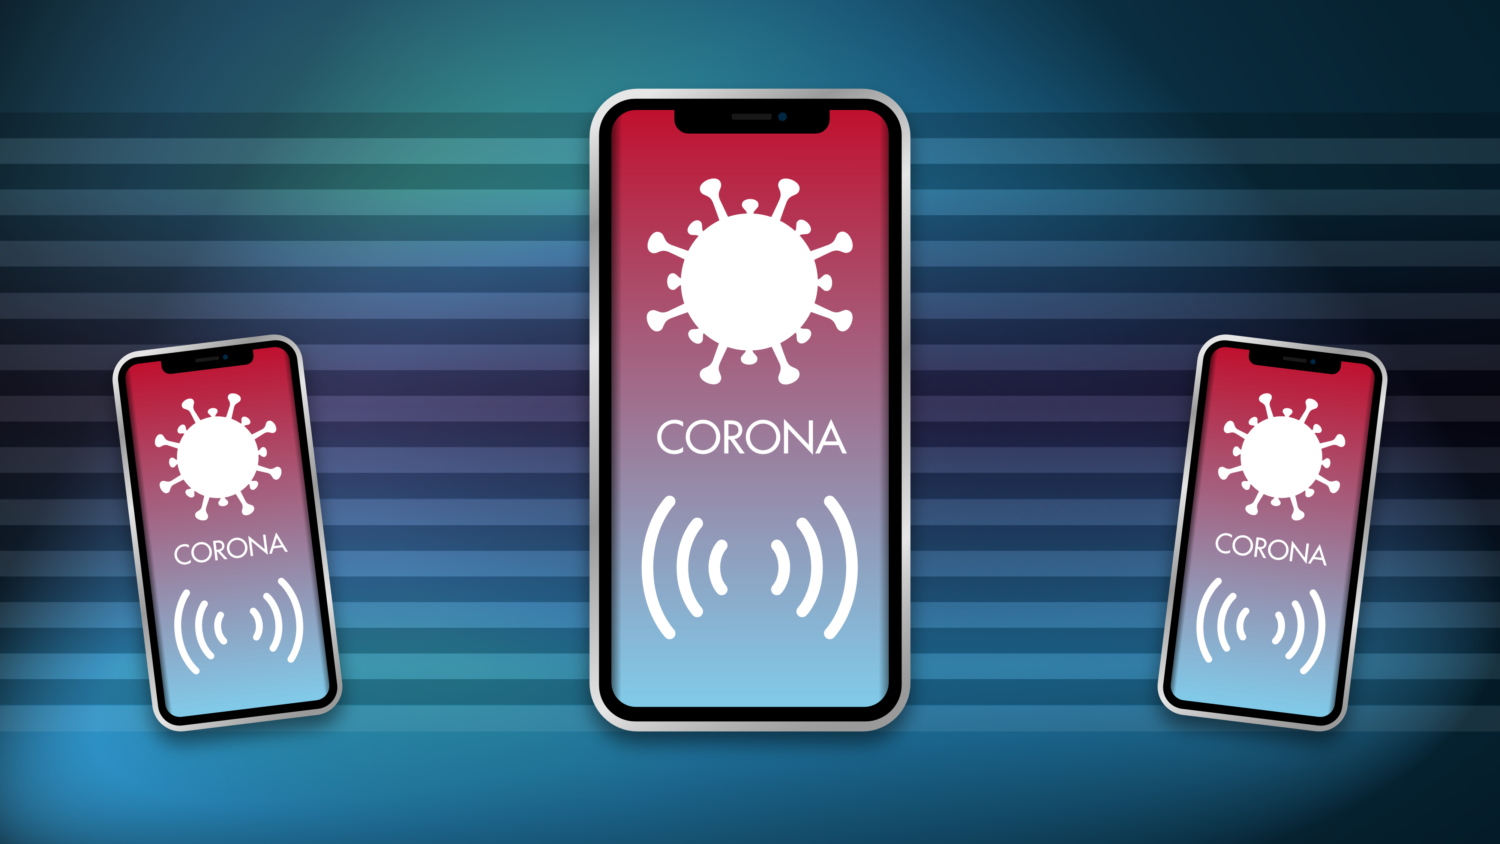 Gratis Download von iXimus.de: Smartphone, iPhone, Corona-App, Corona-Warn-App, iOS, Adroid, Deutschland, Covid-19, Corona, Application, transparenter Hintergrund, #000247